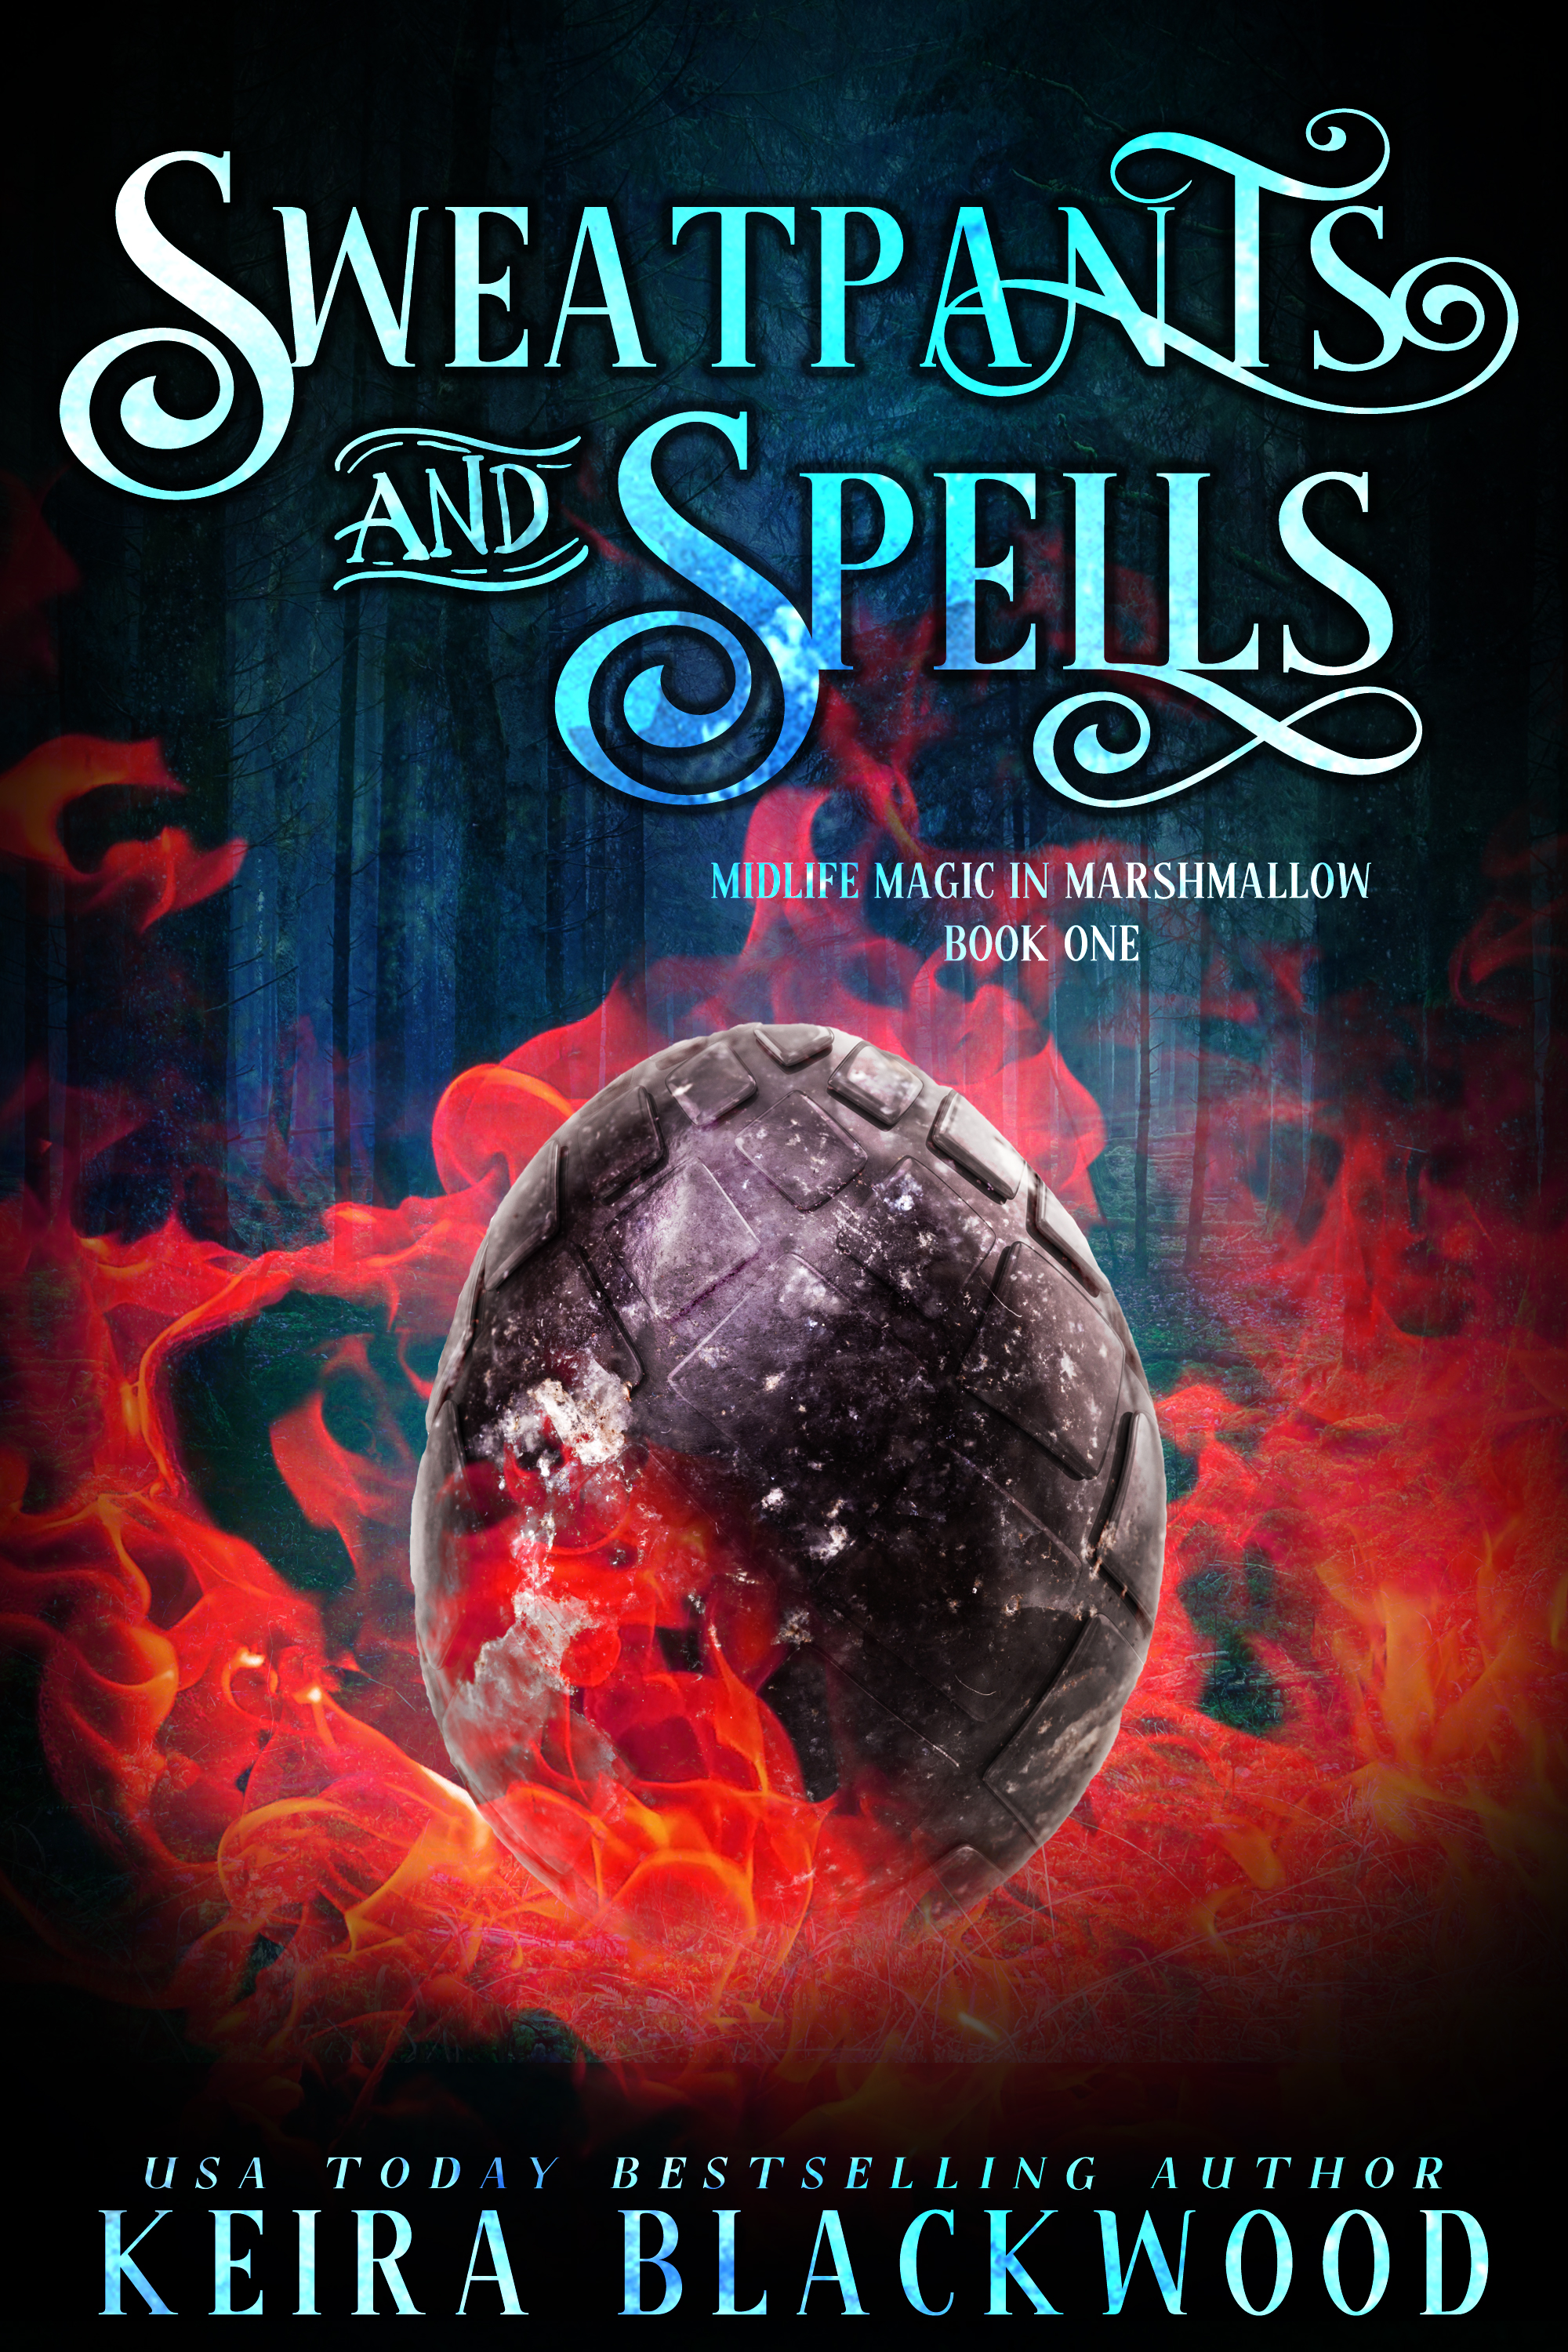 [PDF] [EPUB] Sweatpants and Spells (Midlife Magic in Marshmallow, #1) Download by Keira Blackwood